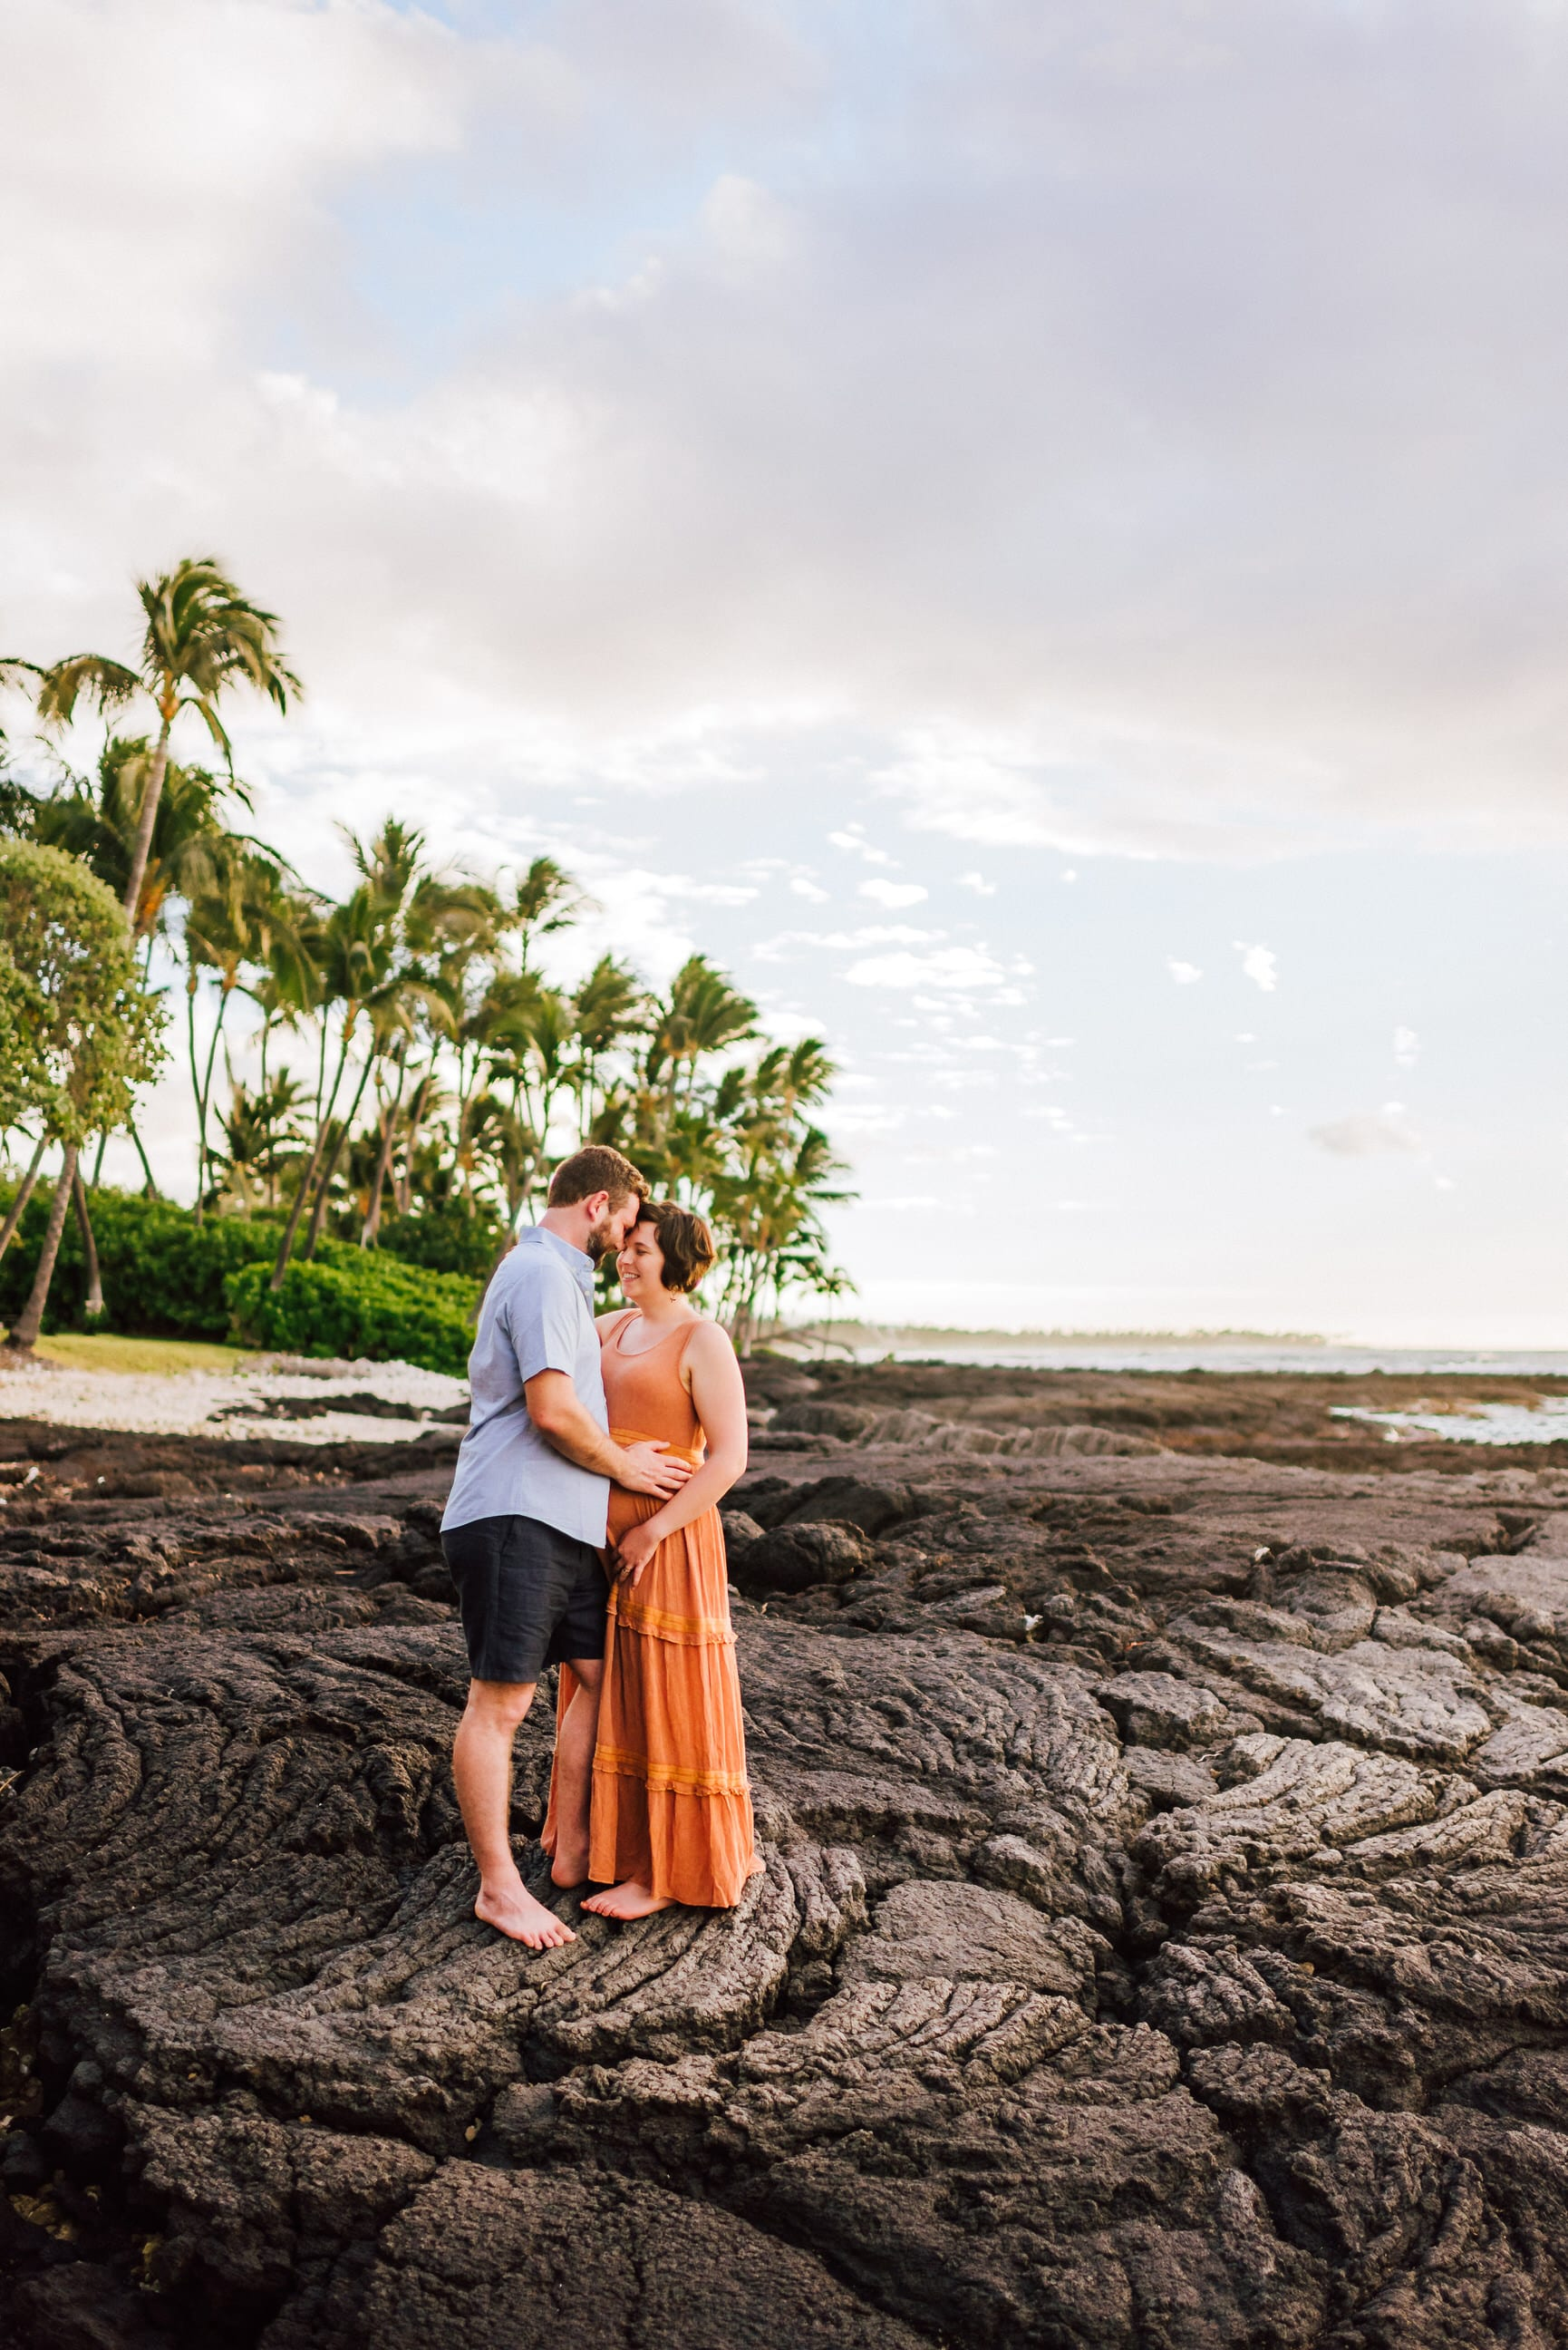 Big-Island-Photographer-Maternity-Babymoon-Hawaii-9.jpg